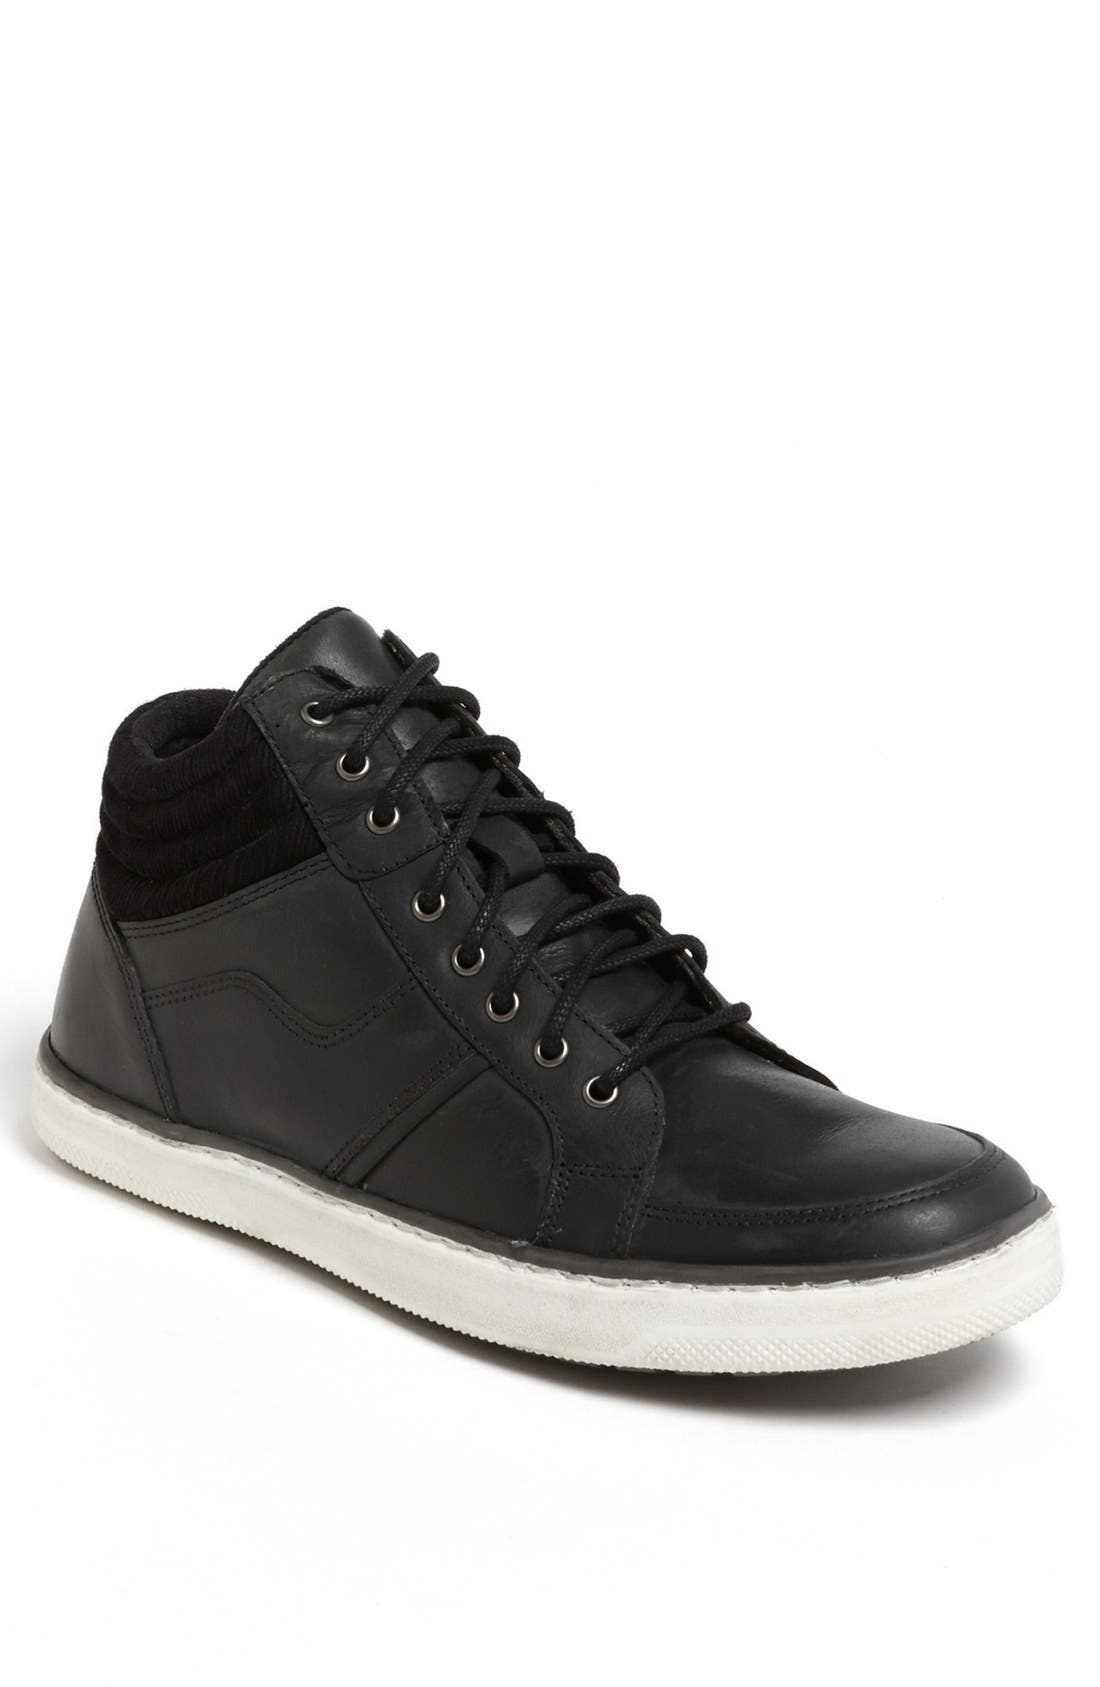 Alternate Image 1 Selected - Kenneth Cole Reaction 'Mir-Acle' Sneaker